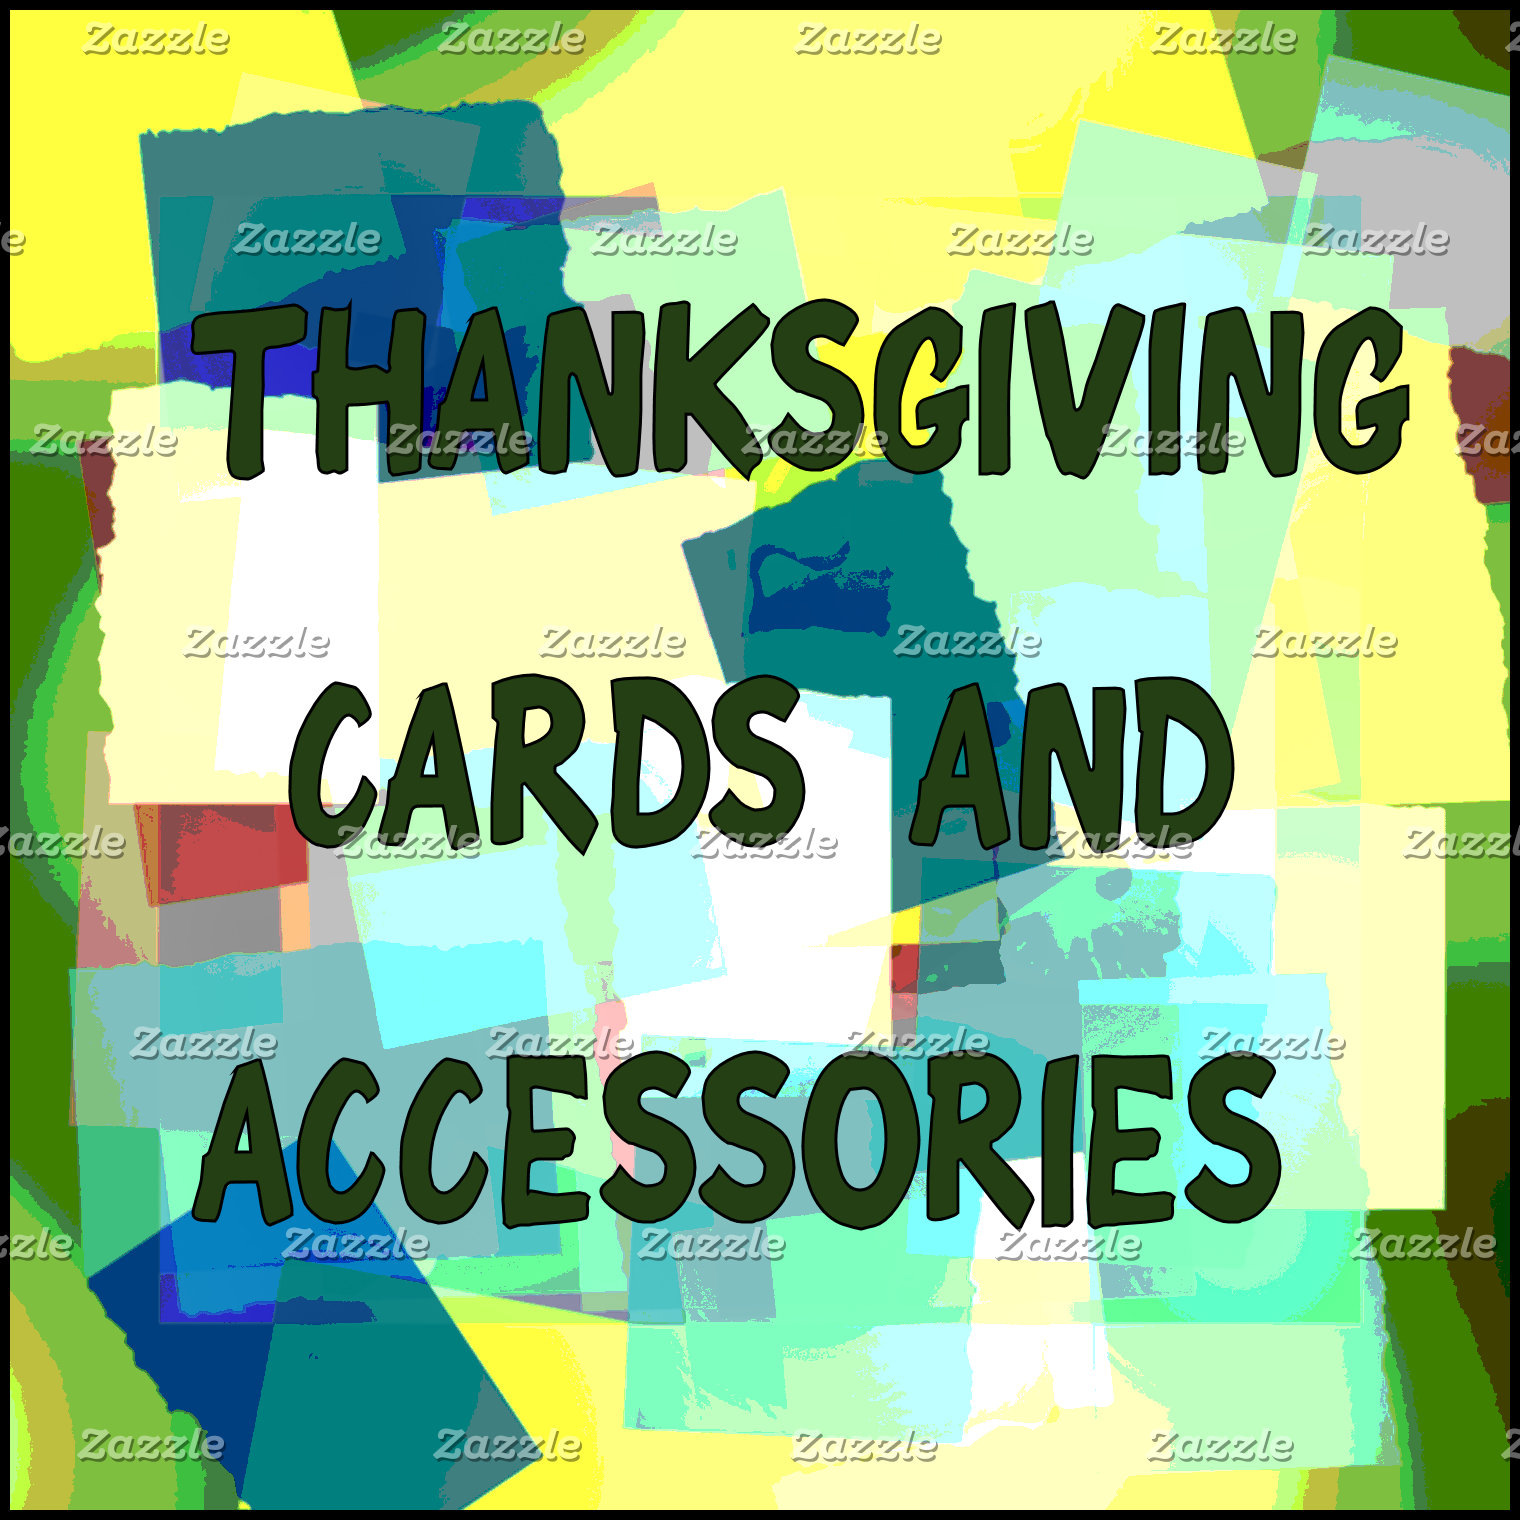 THANKSGIVING CARDS AND ACCESSORIES